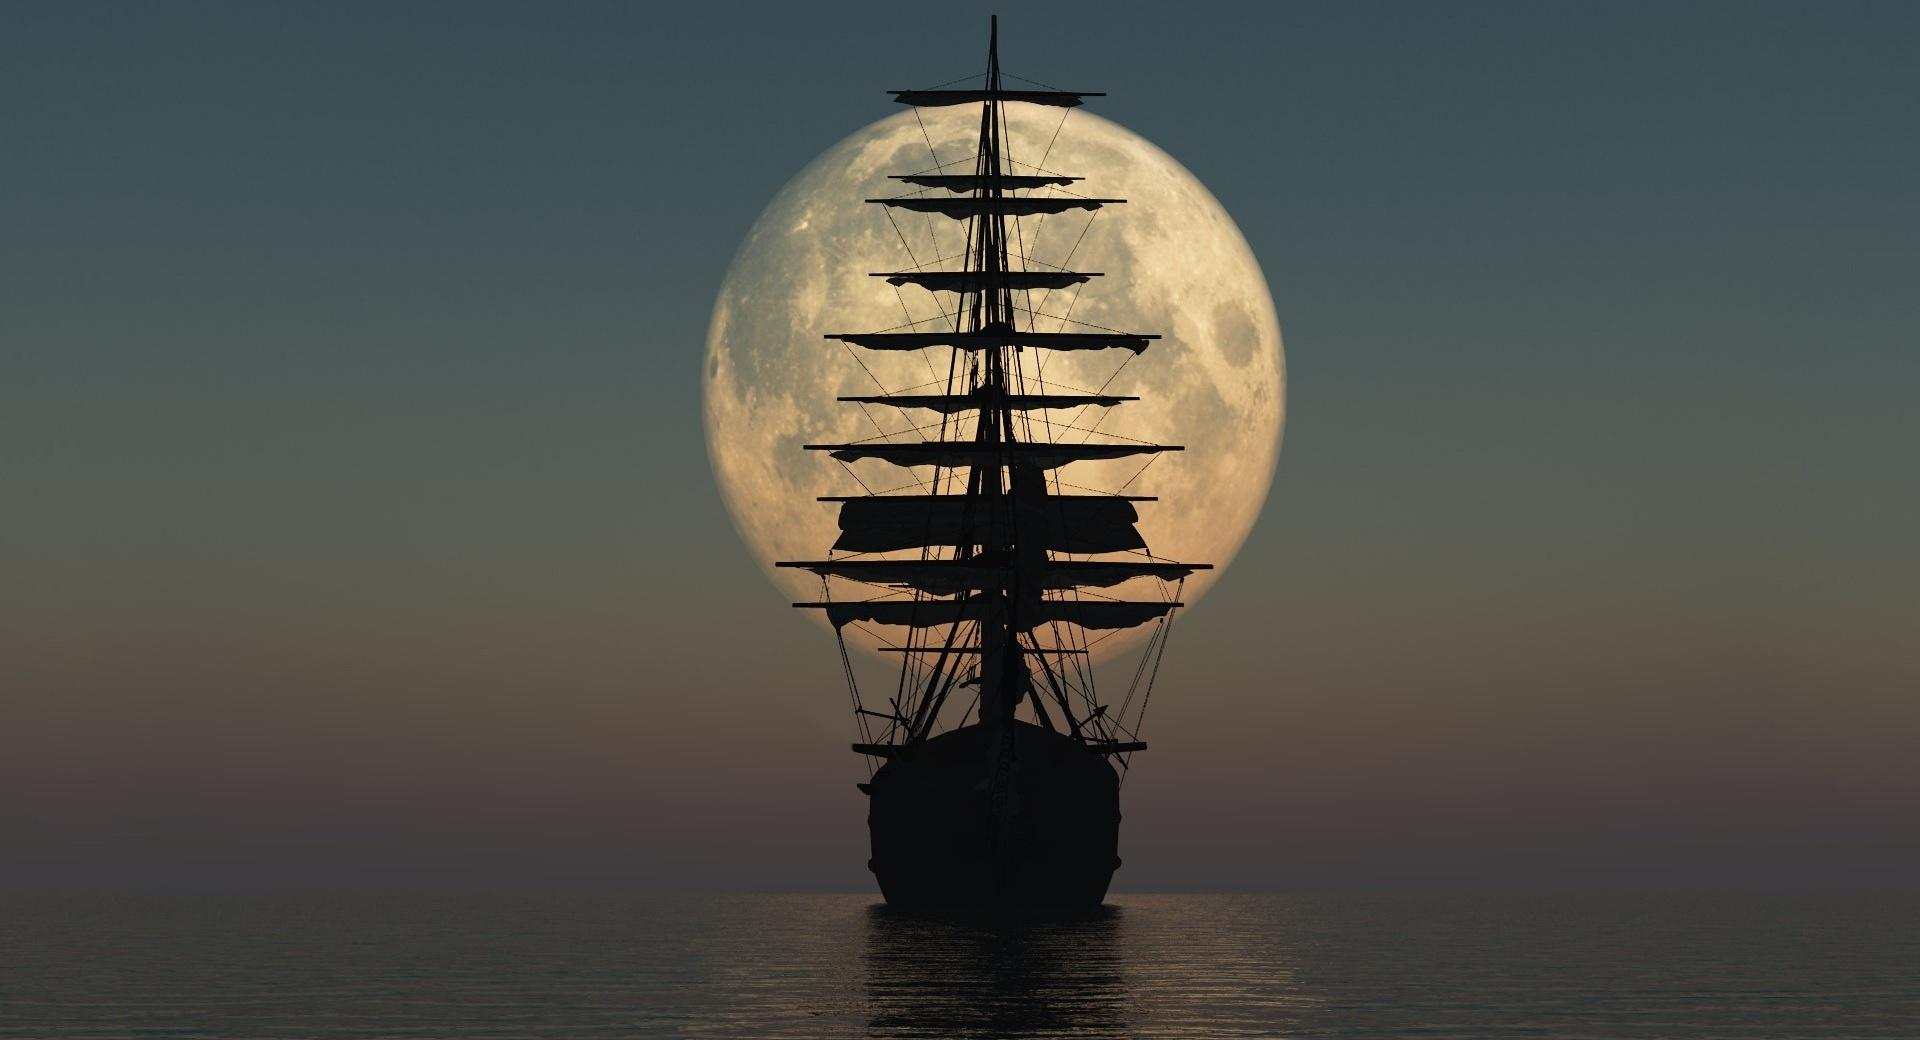 Sailing by Moonlight wallpapers HD quality